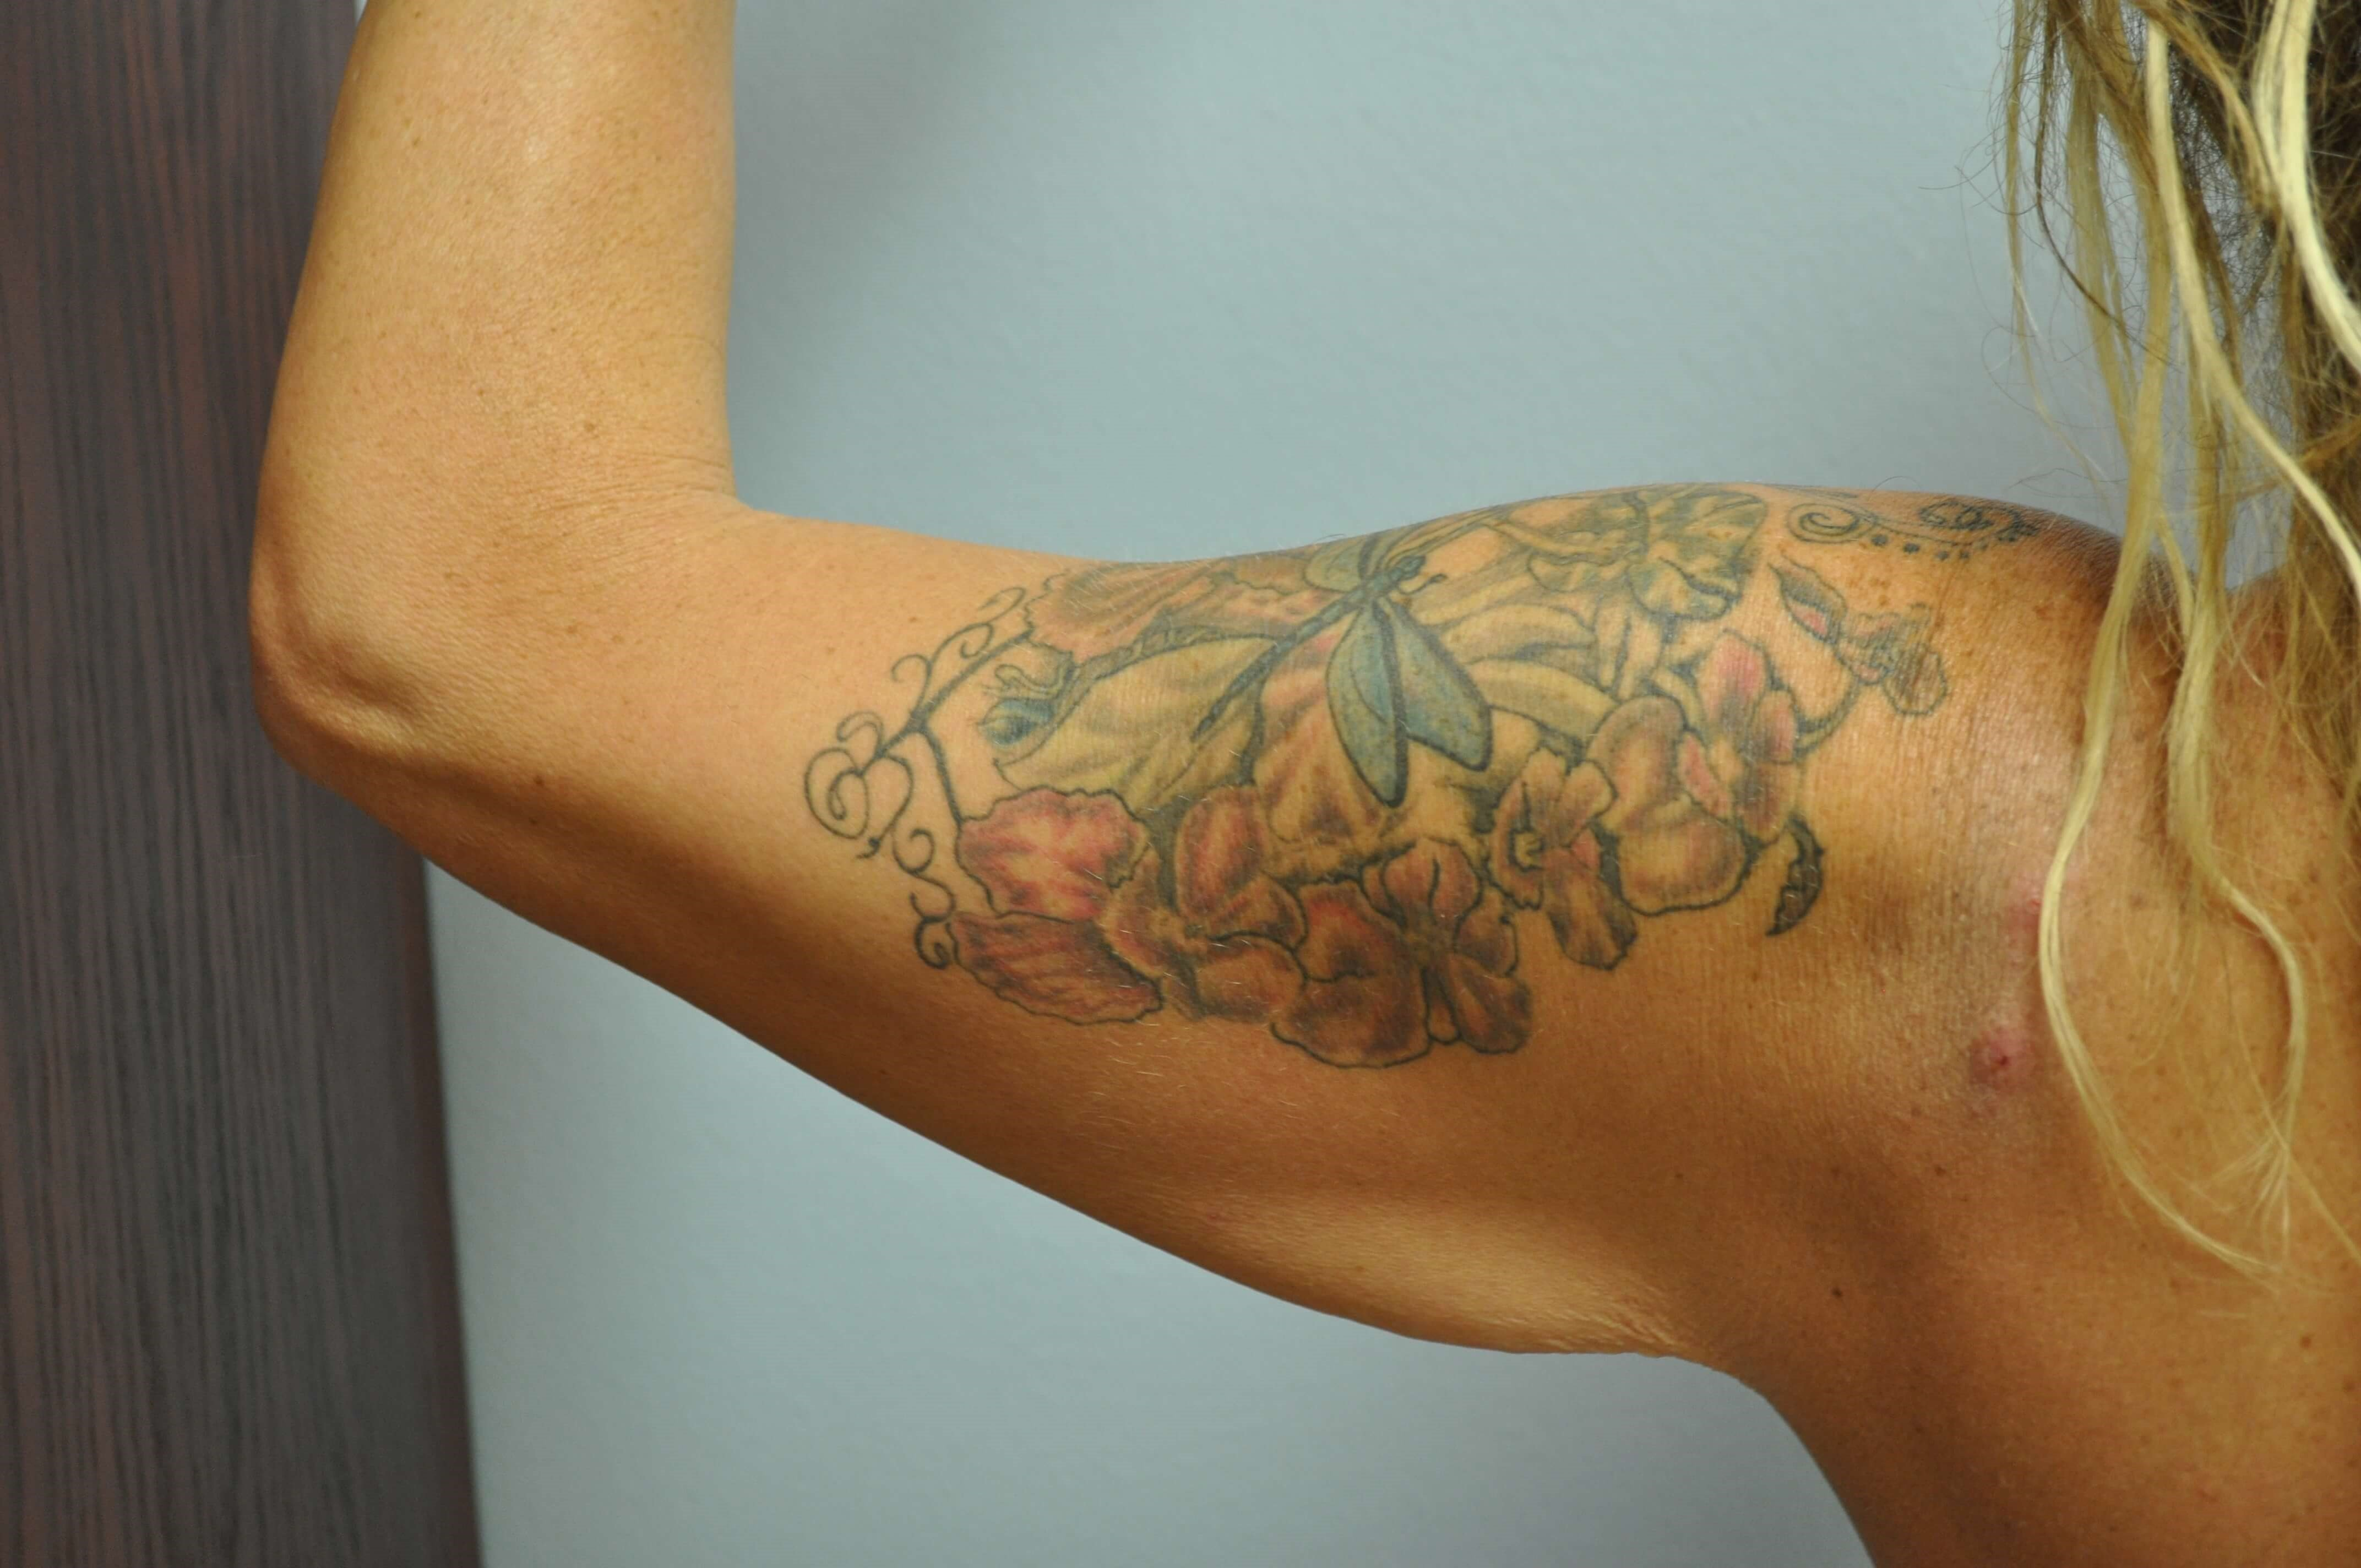 Back View of Arm Before